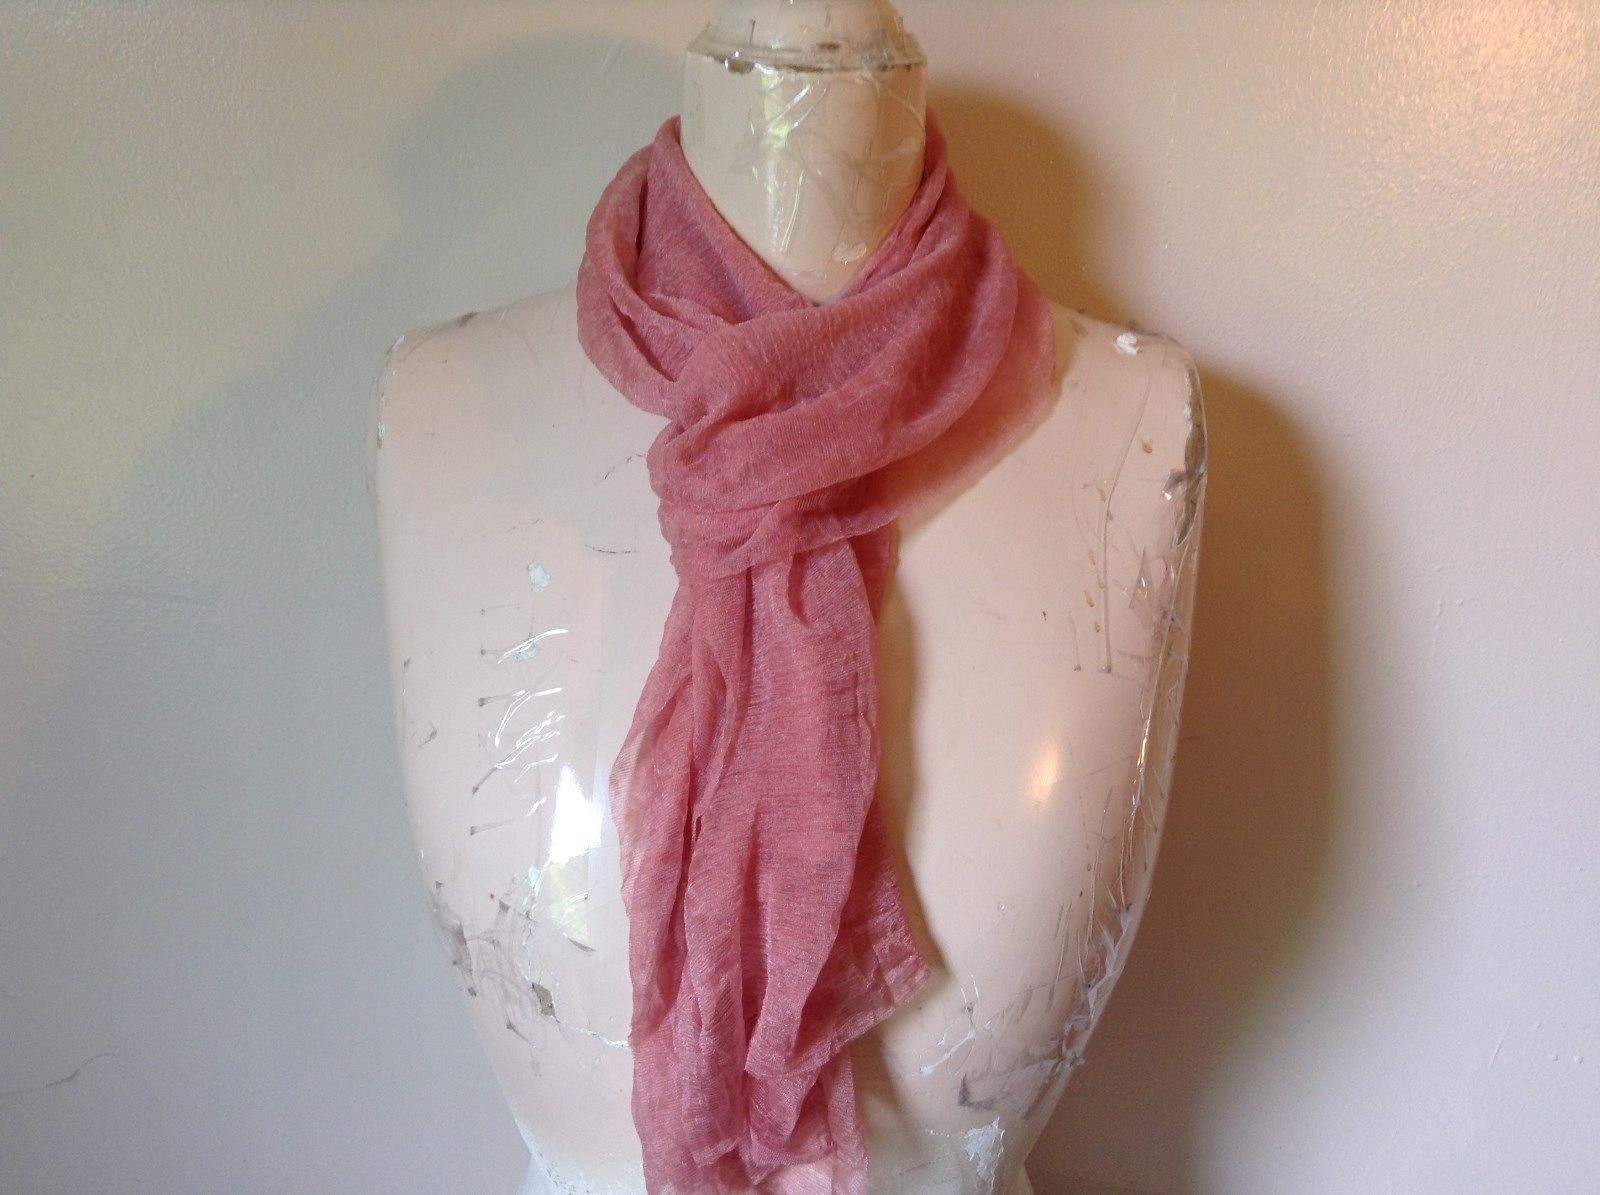 Pretty Pale Pink flesh tone shiny sheer delicate new scarf